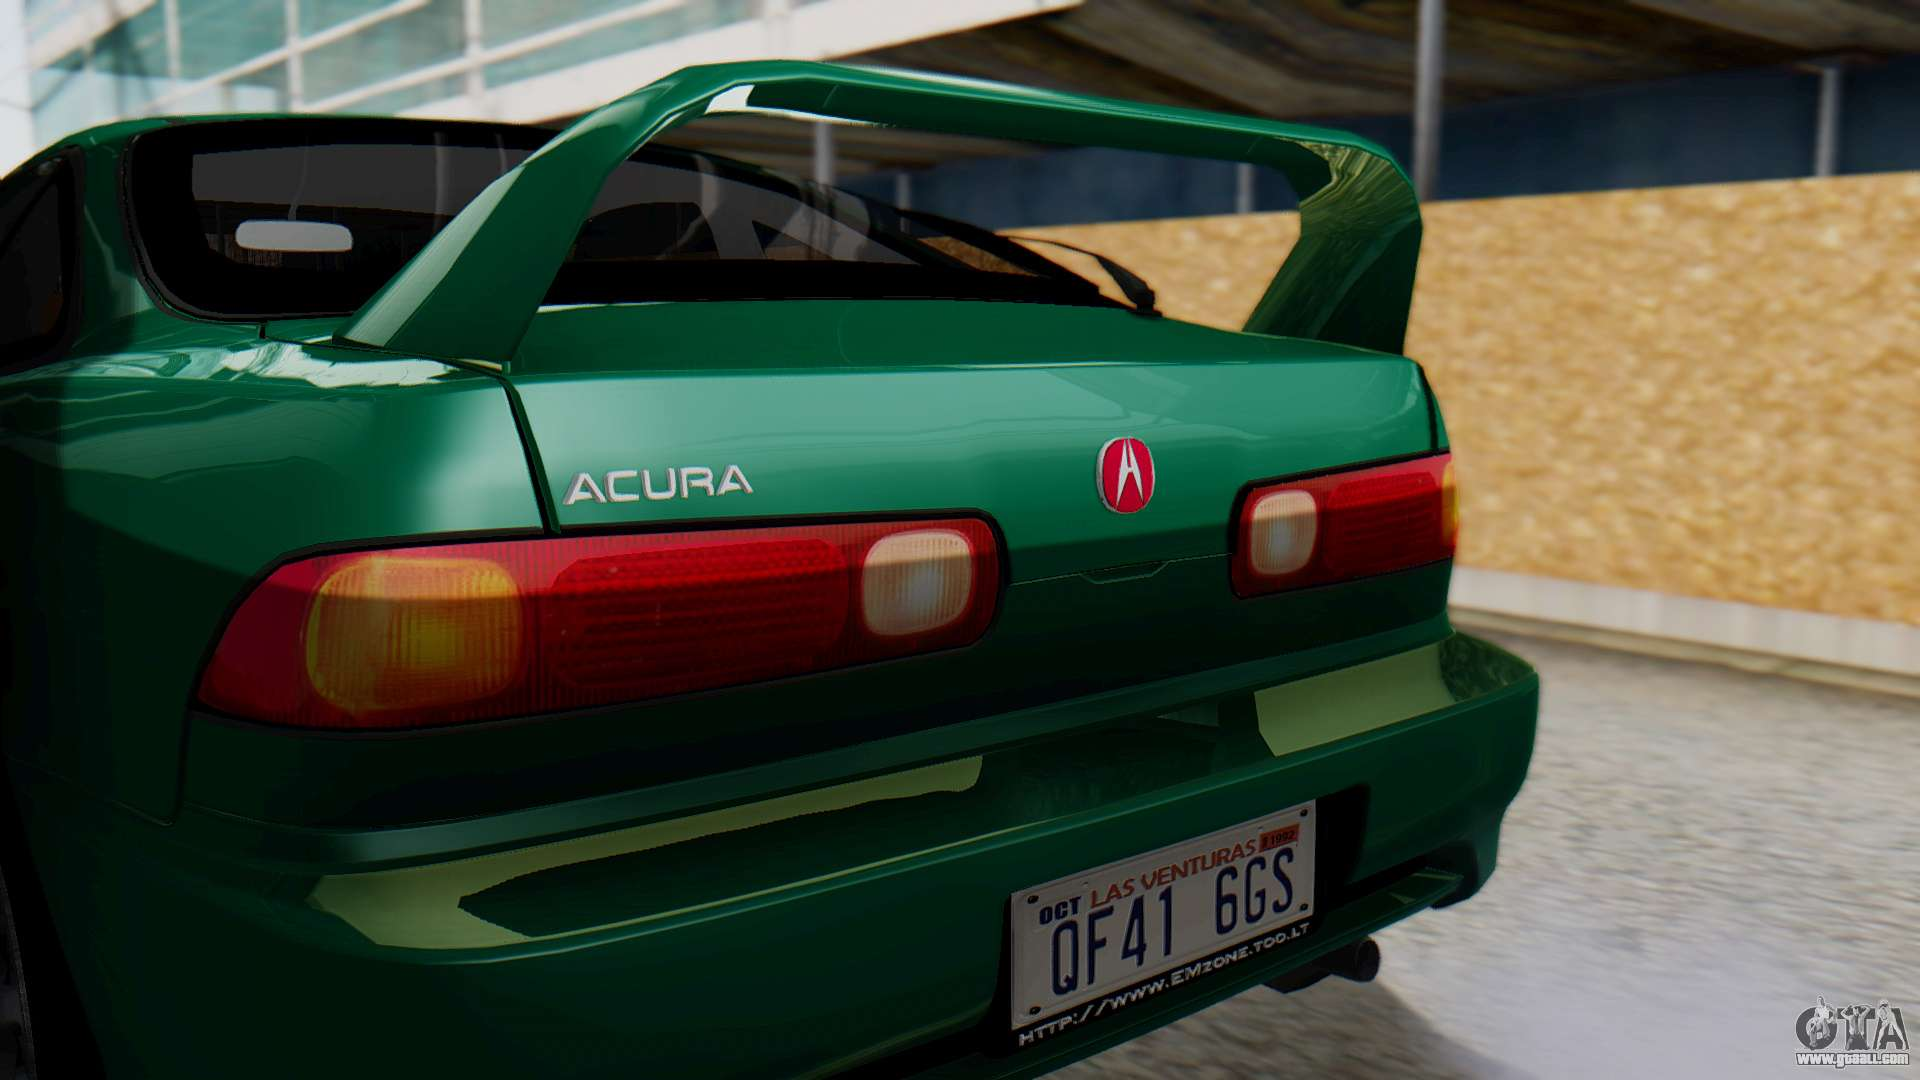 integra likewise fast and - photo #8